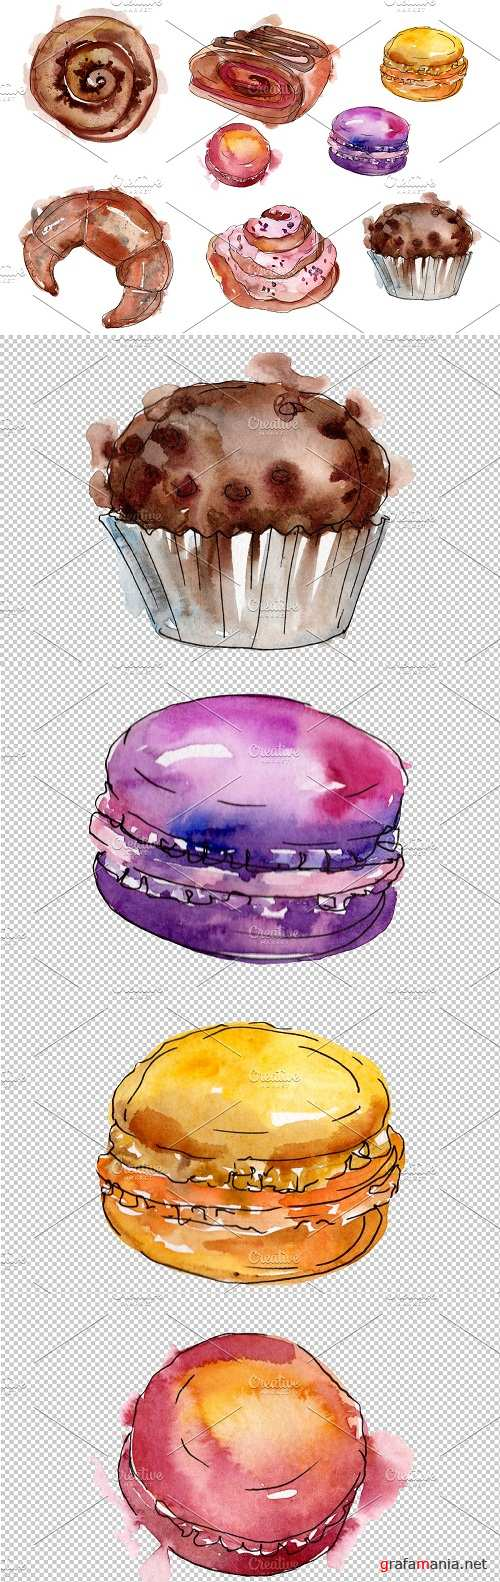 Dessert Provence Watercolor png - 3567660